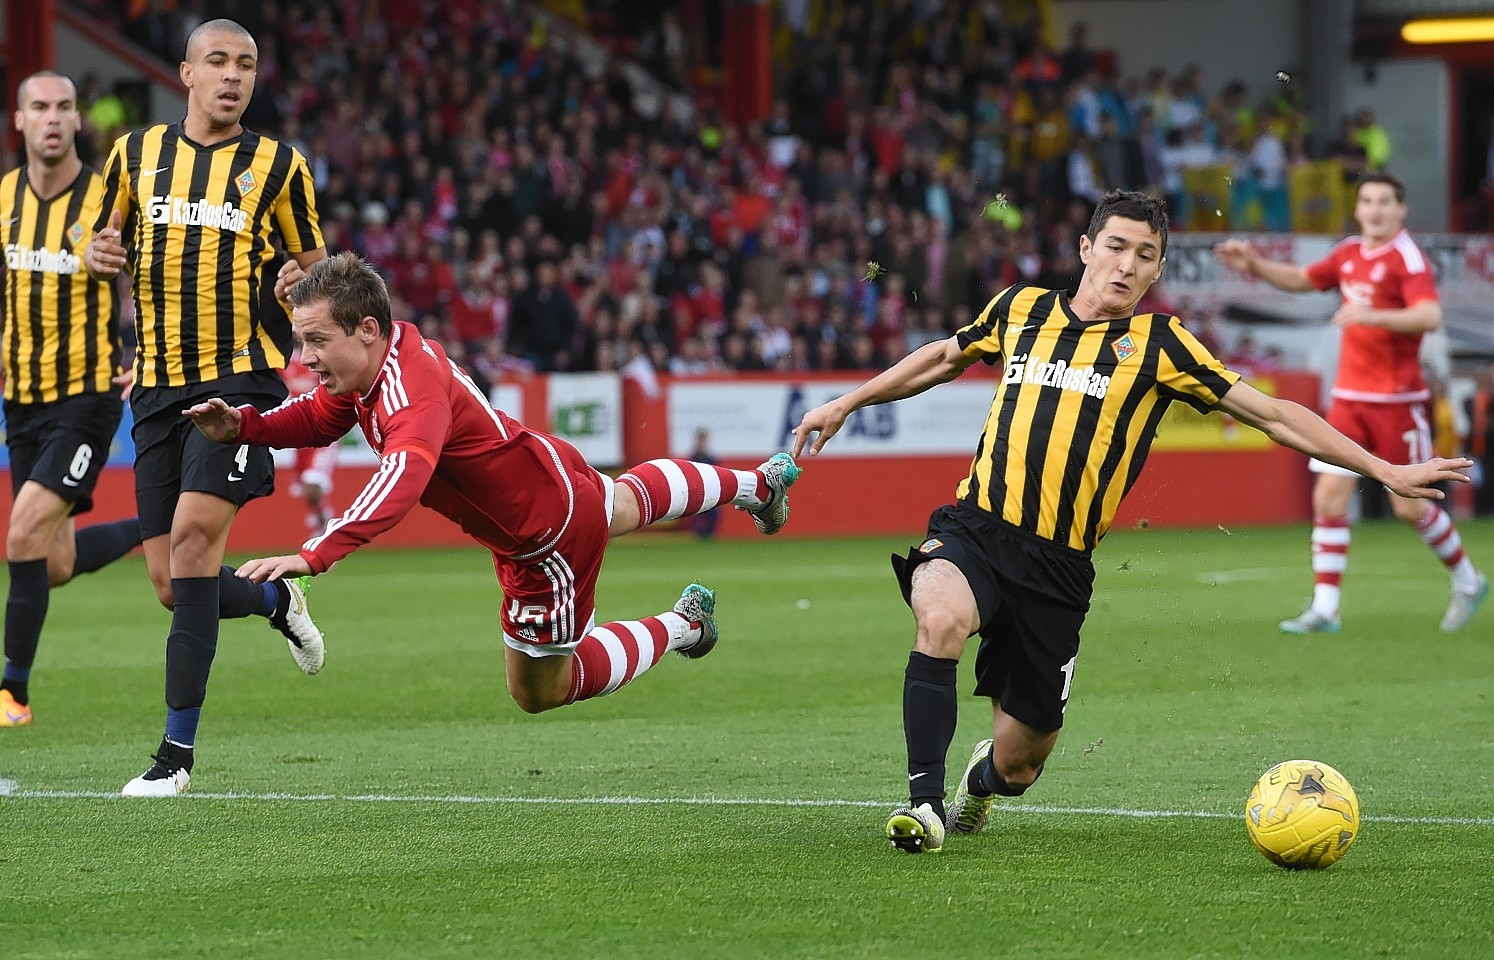 Pawlett felt he should have had a penalty for this challenge from Kuantayev